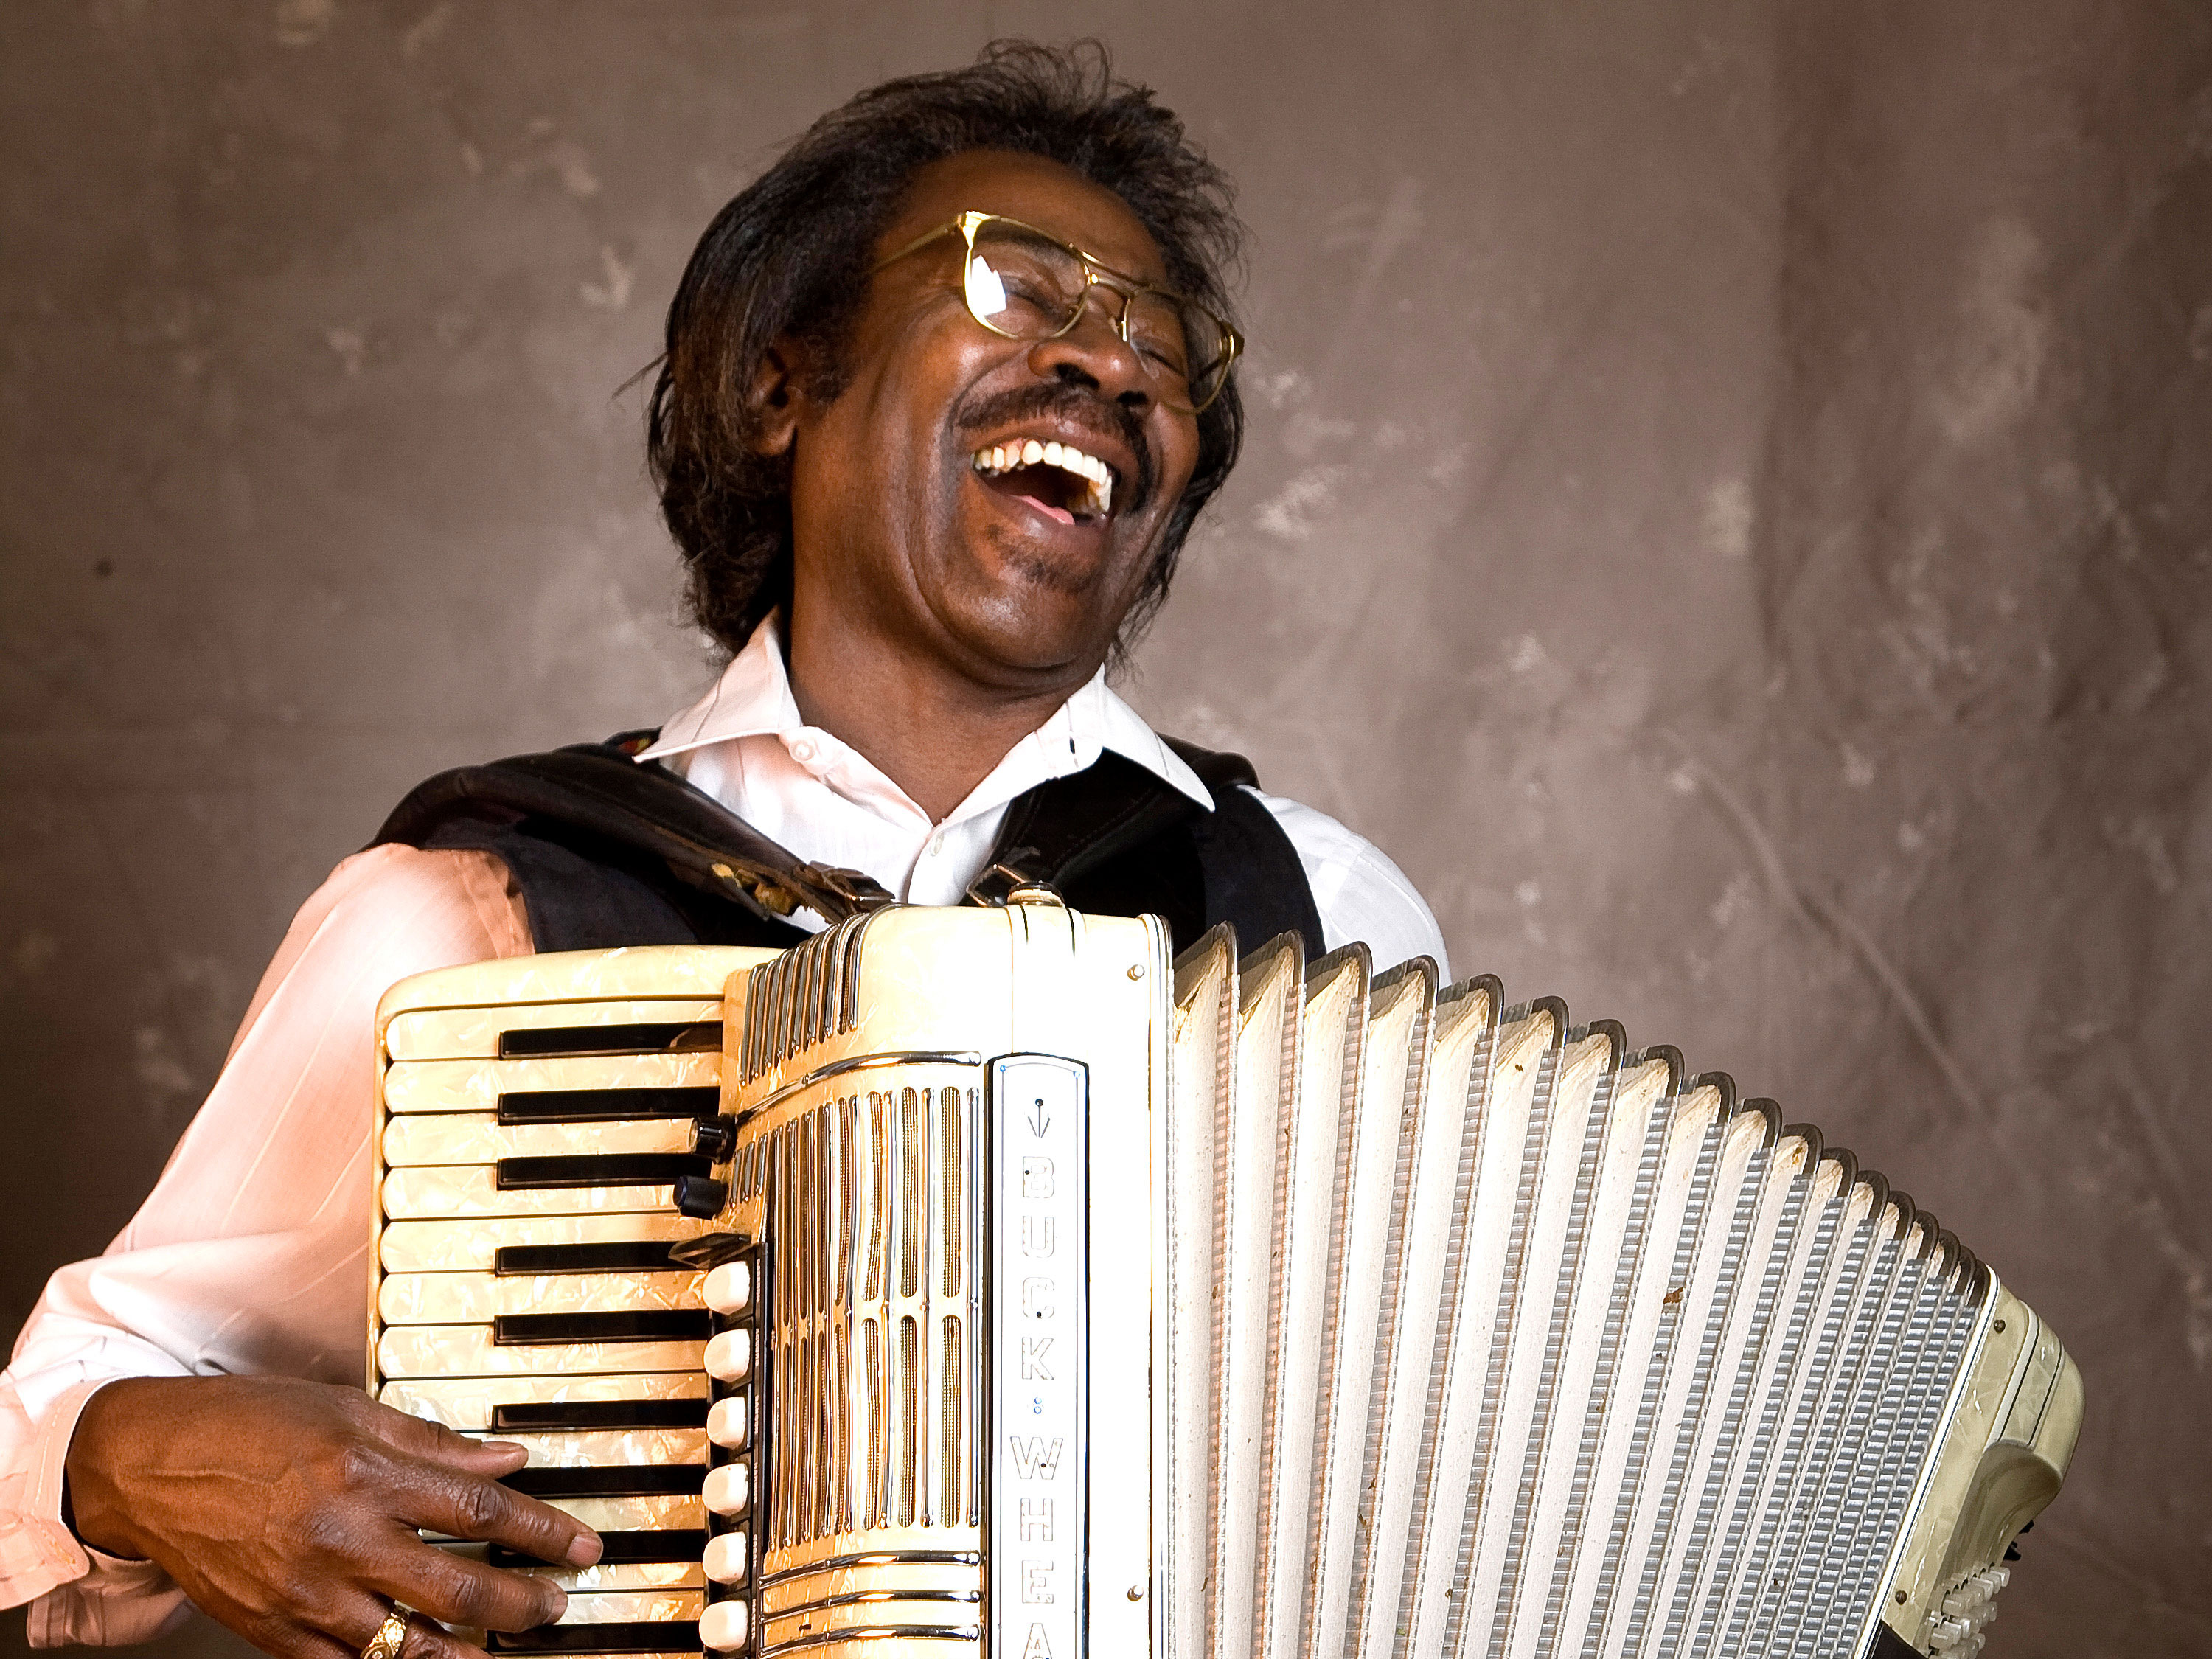 Buckwheat Zydeco (Stanley Dural, Jr.)